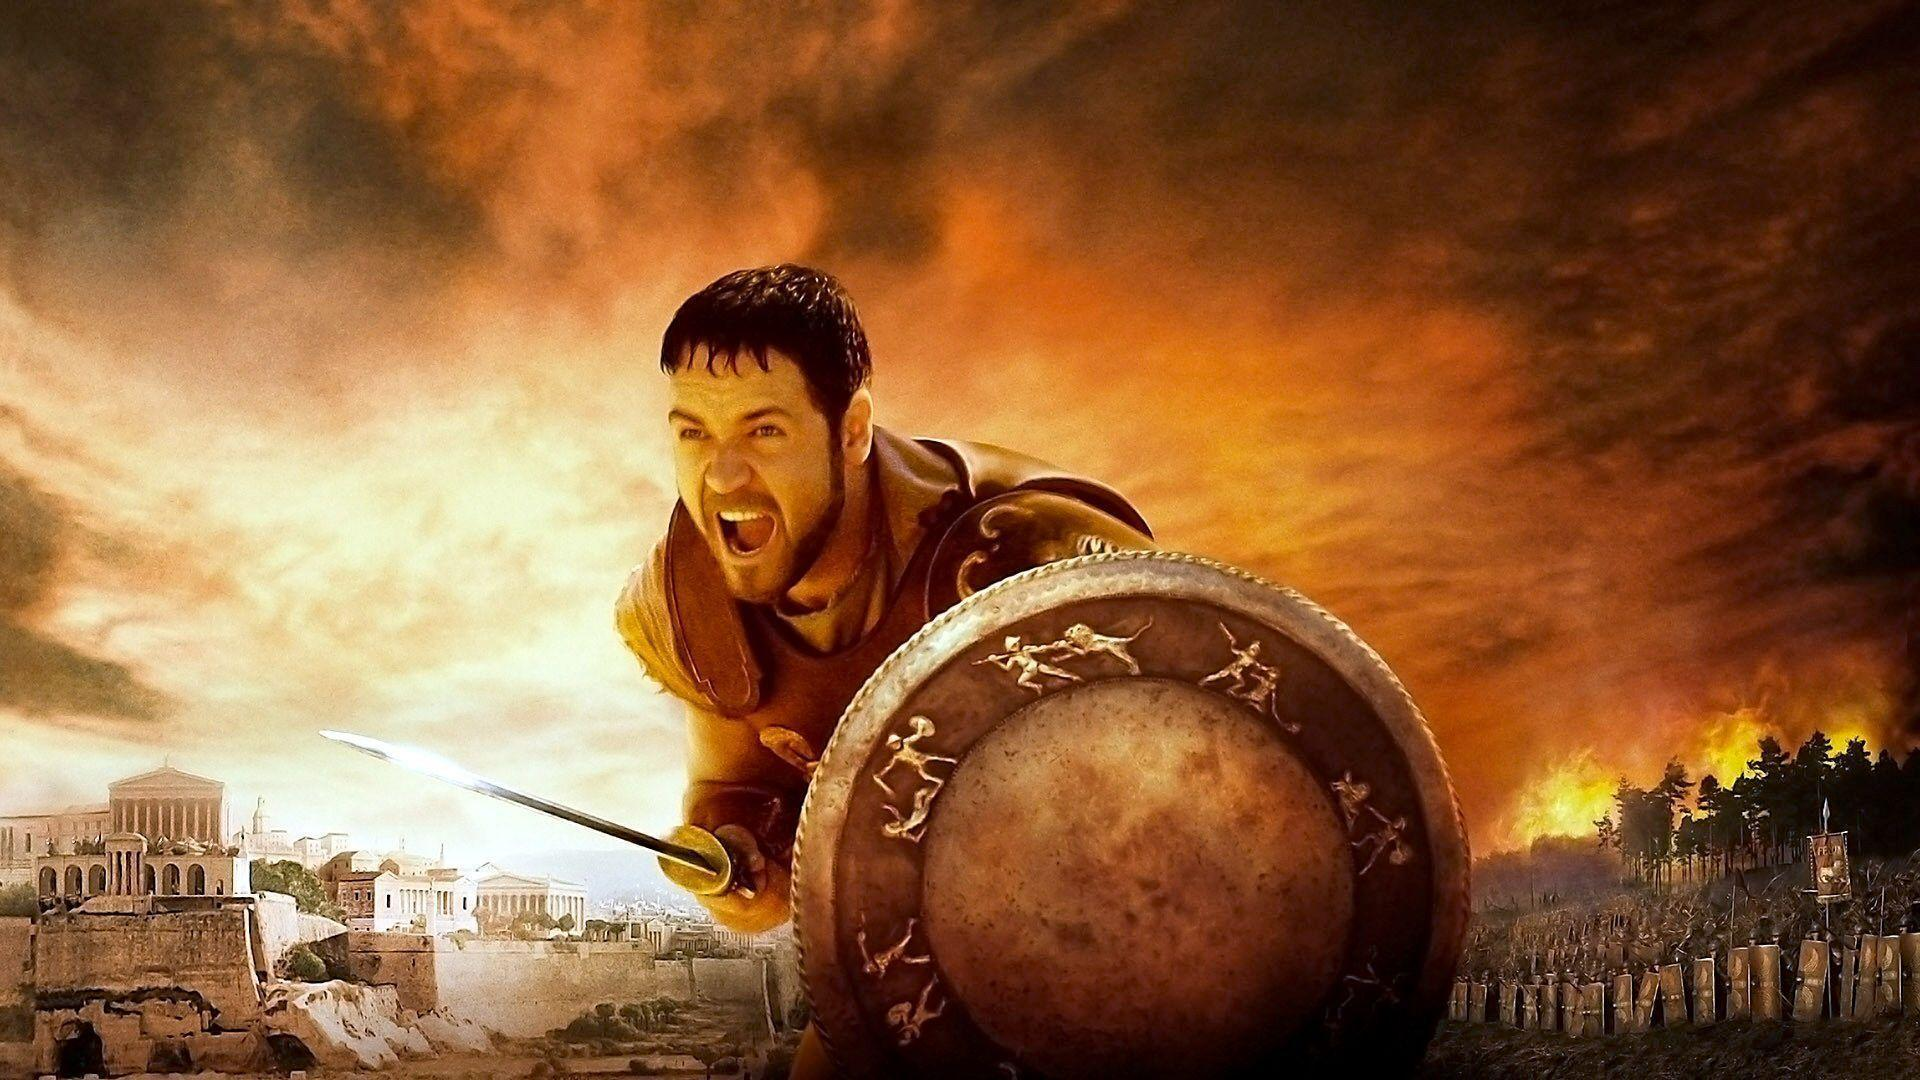 Gladiator Movie Wallpaper | Gladiator Movie Photos | Cool Wallpapers